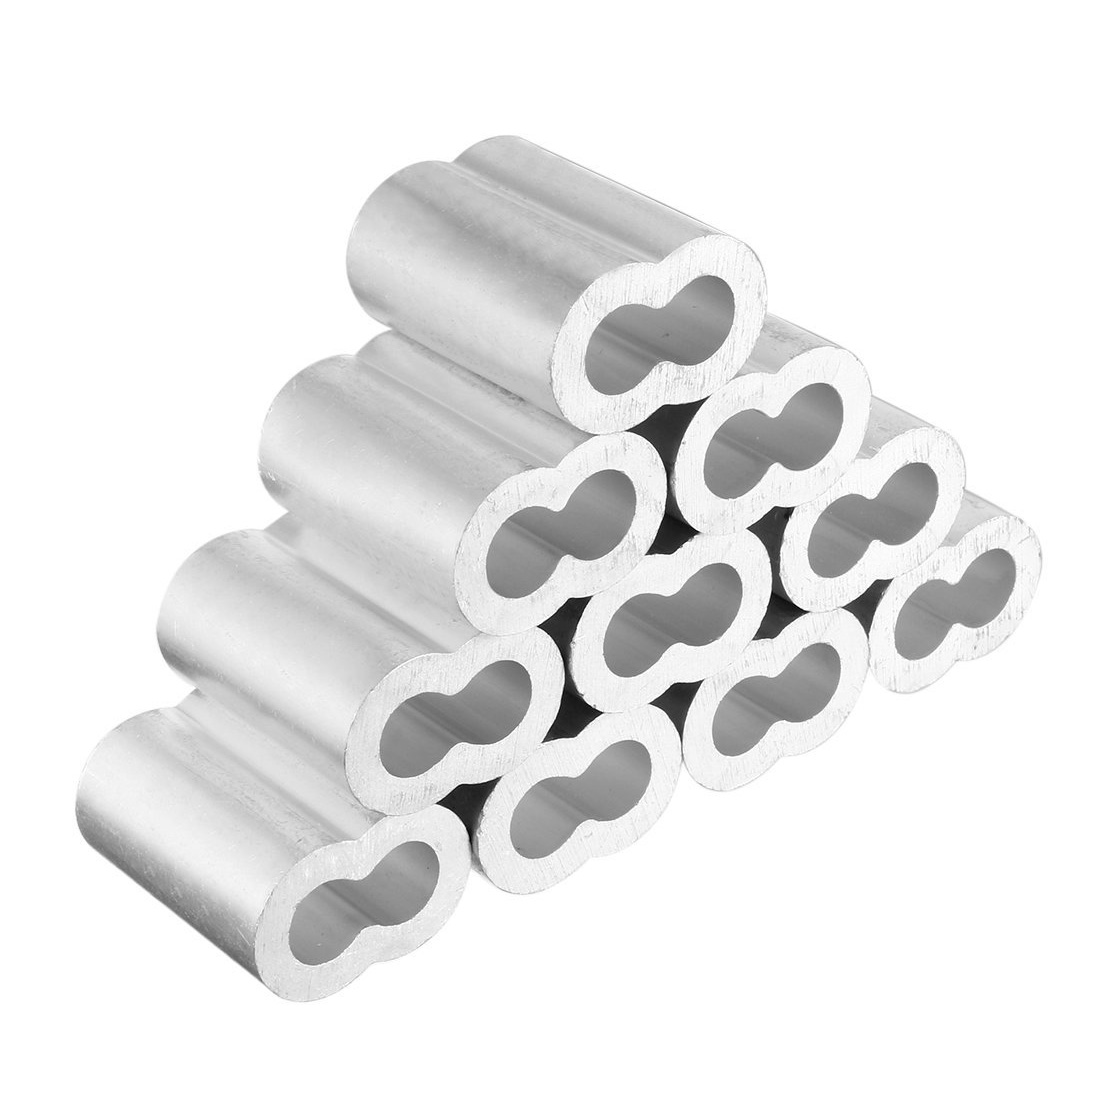 цена на 10pcs 1/2 inch Diameter Wire Rope Aluminum Sleeves Clip Fittings Cable Crimps Fittings Loop Sleeve Ferrule Stop Wire Rope Cable